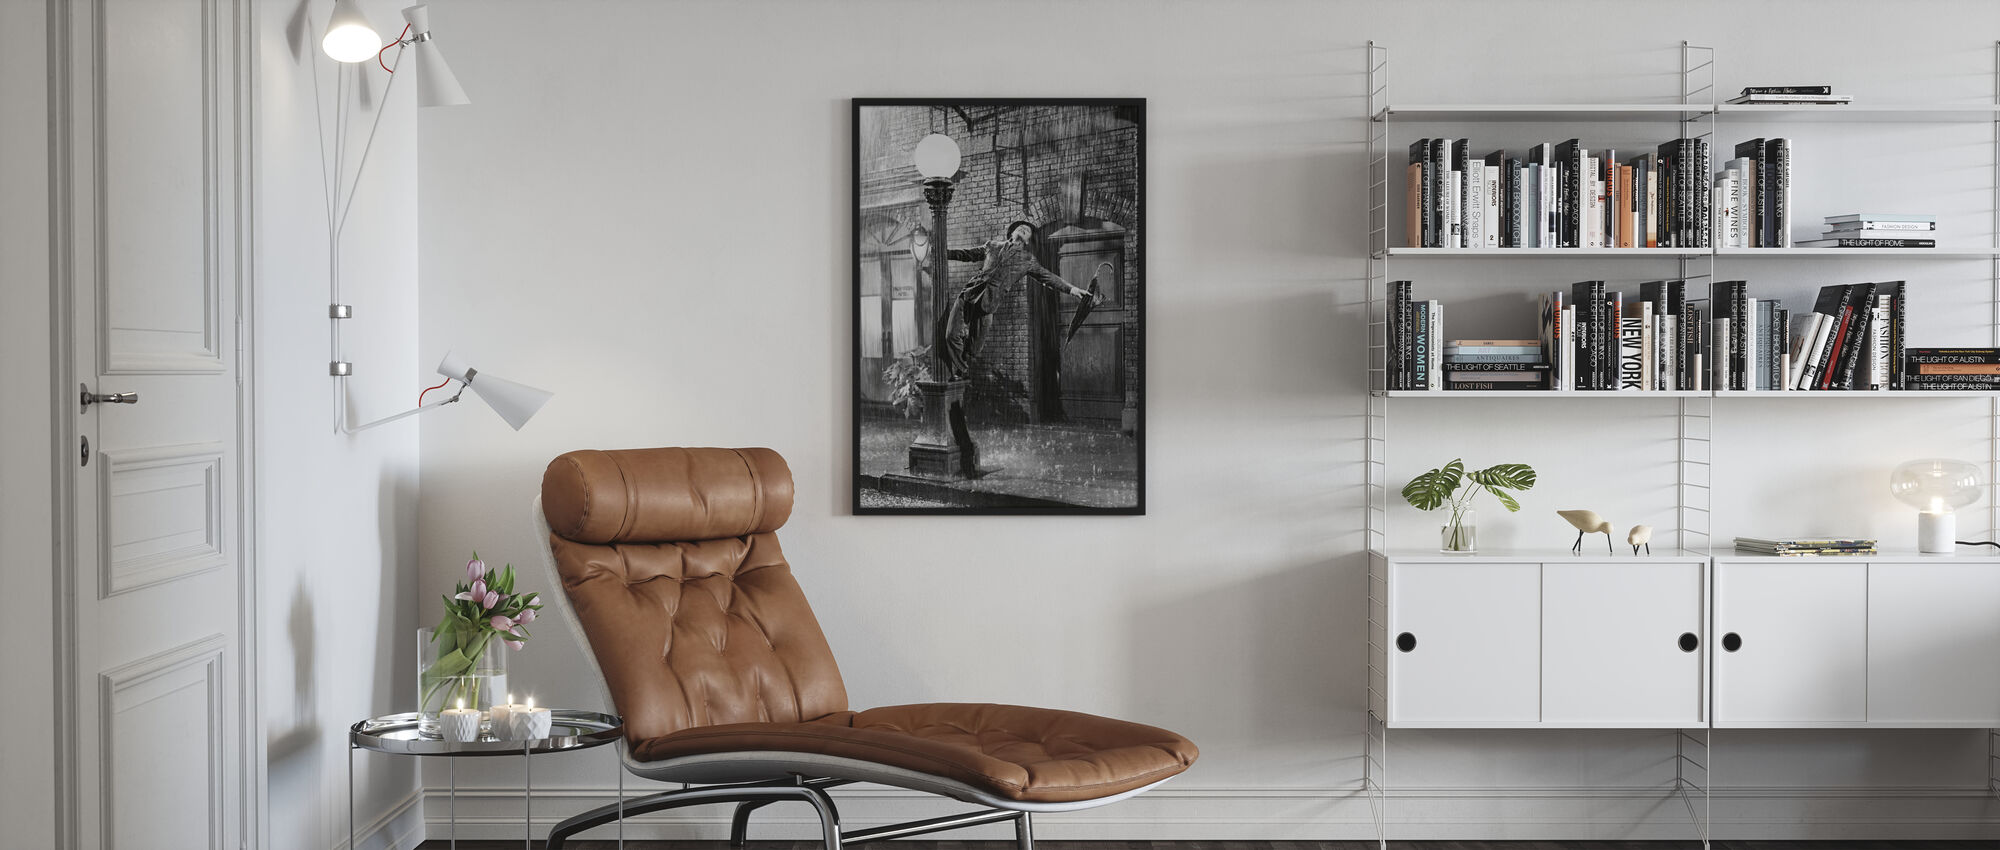 Singing - Gene Kelly - Poster - Living Room